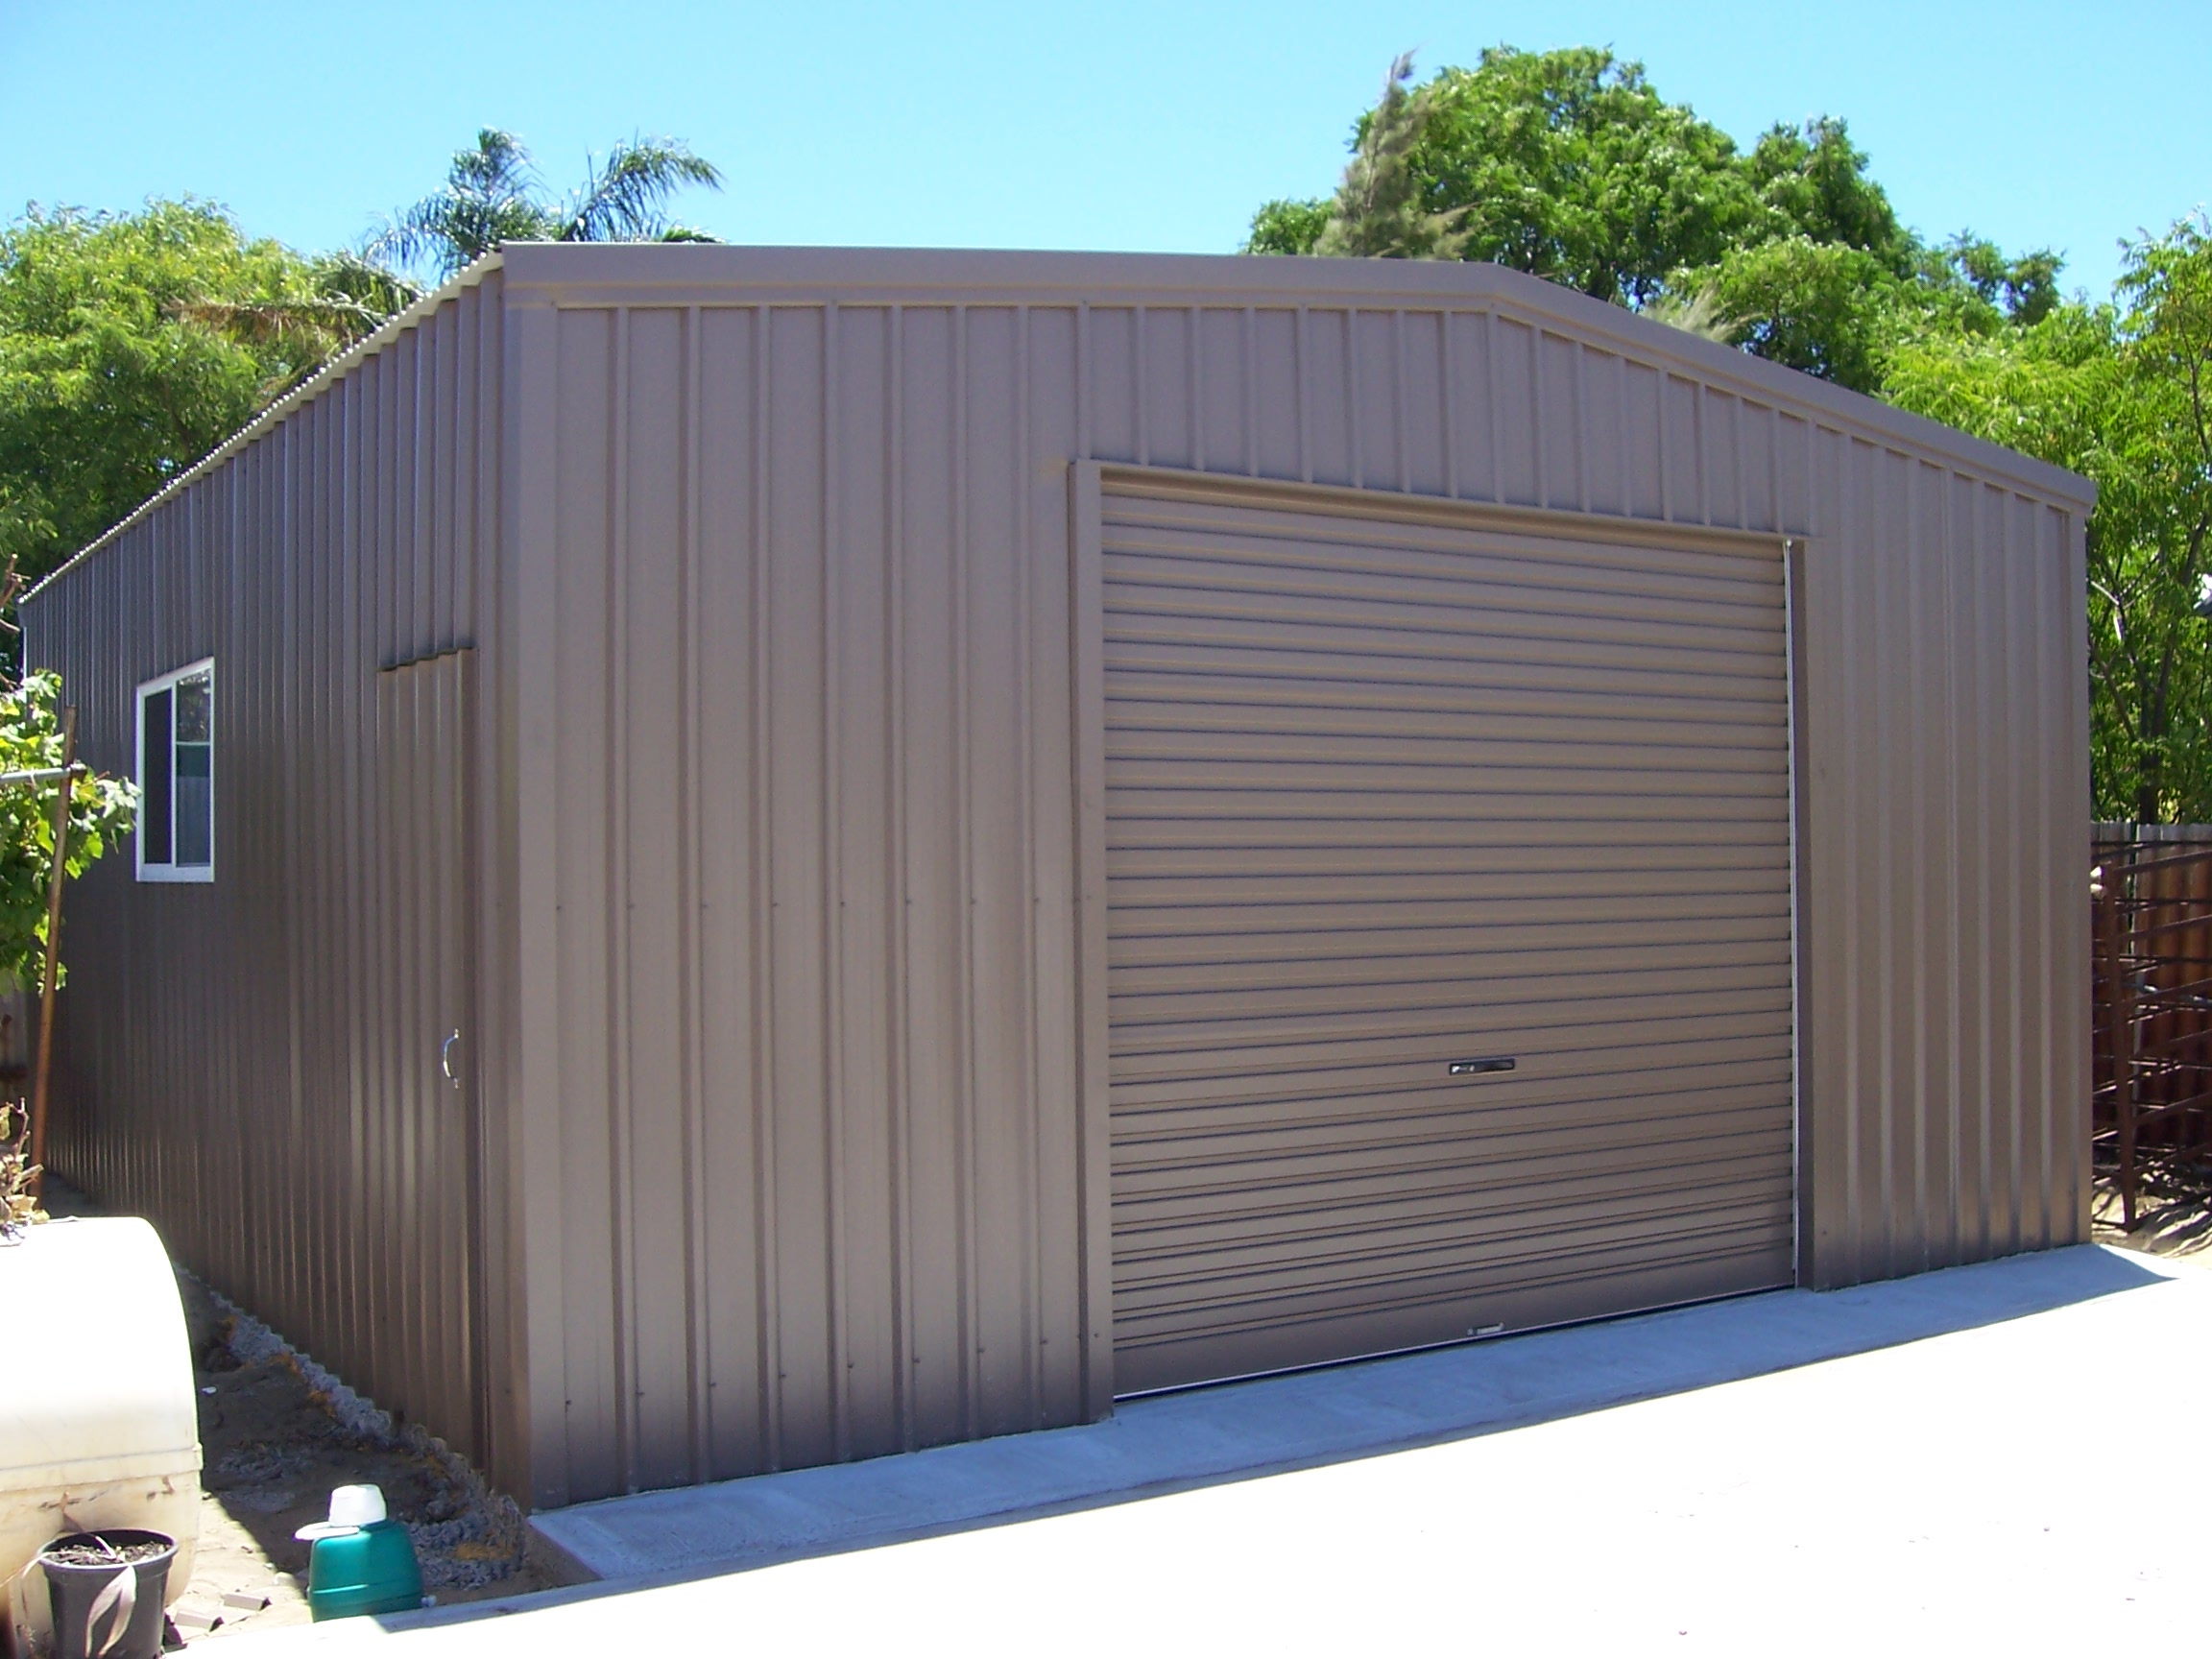 Shed prices nwsm for How much will it cost to build a shed